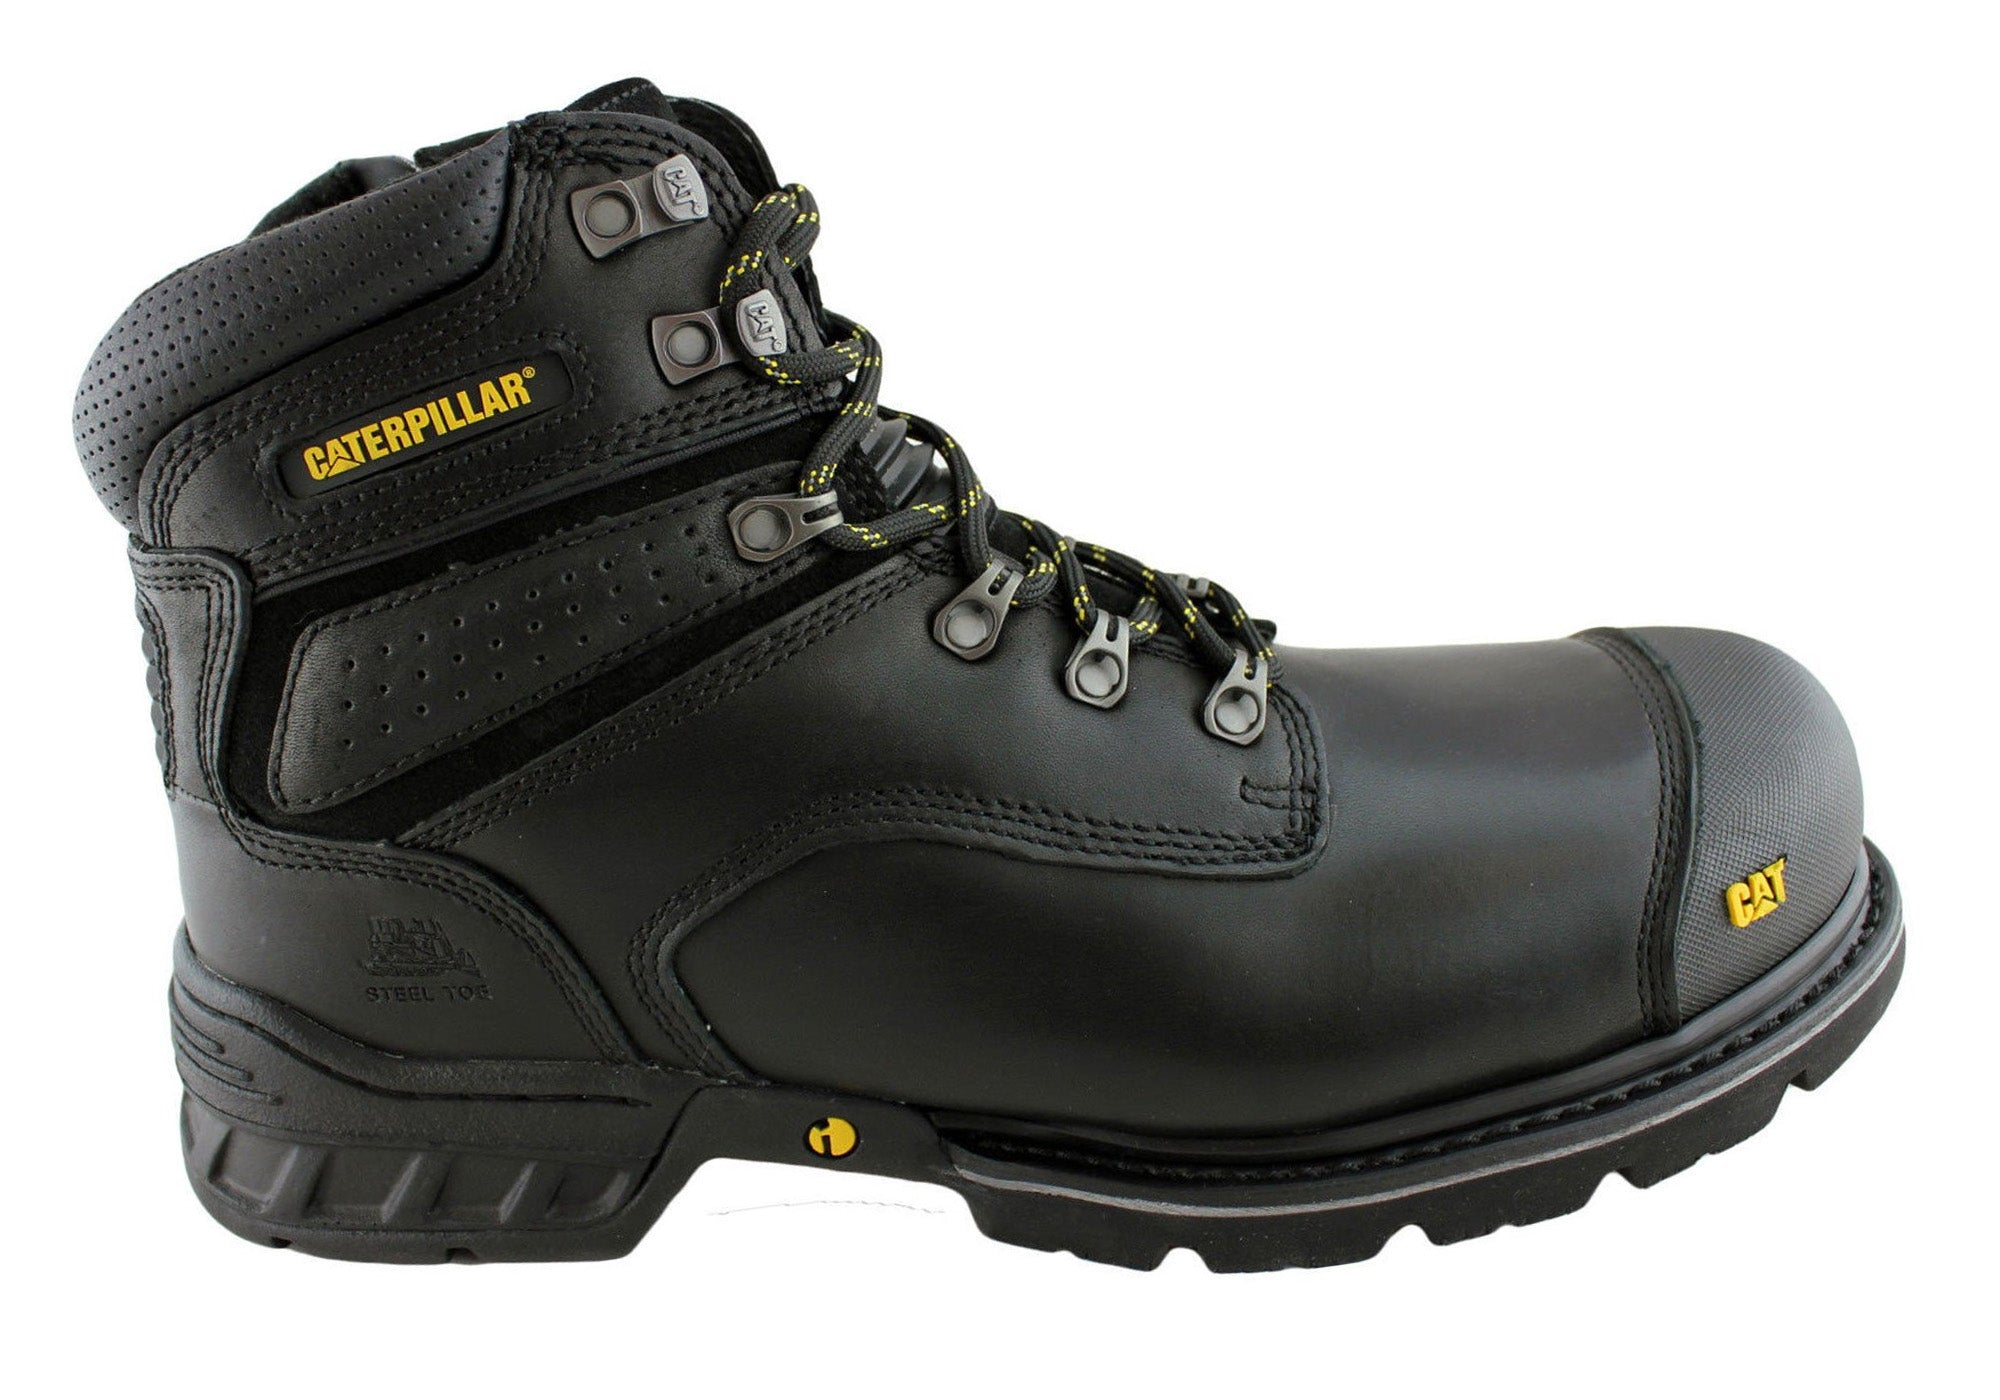 Caterpillar Safety Shoes Online Shopping